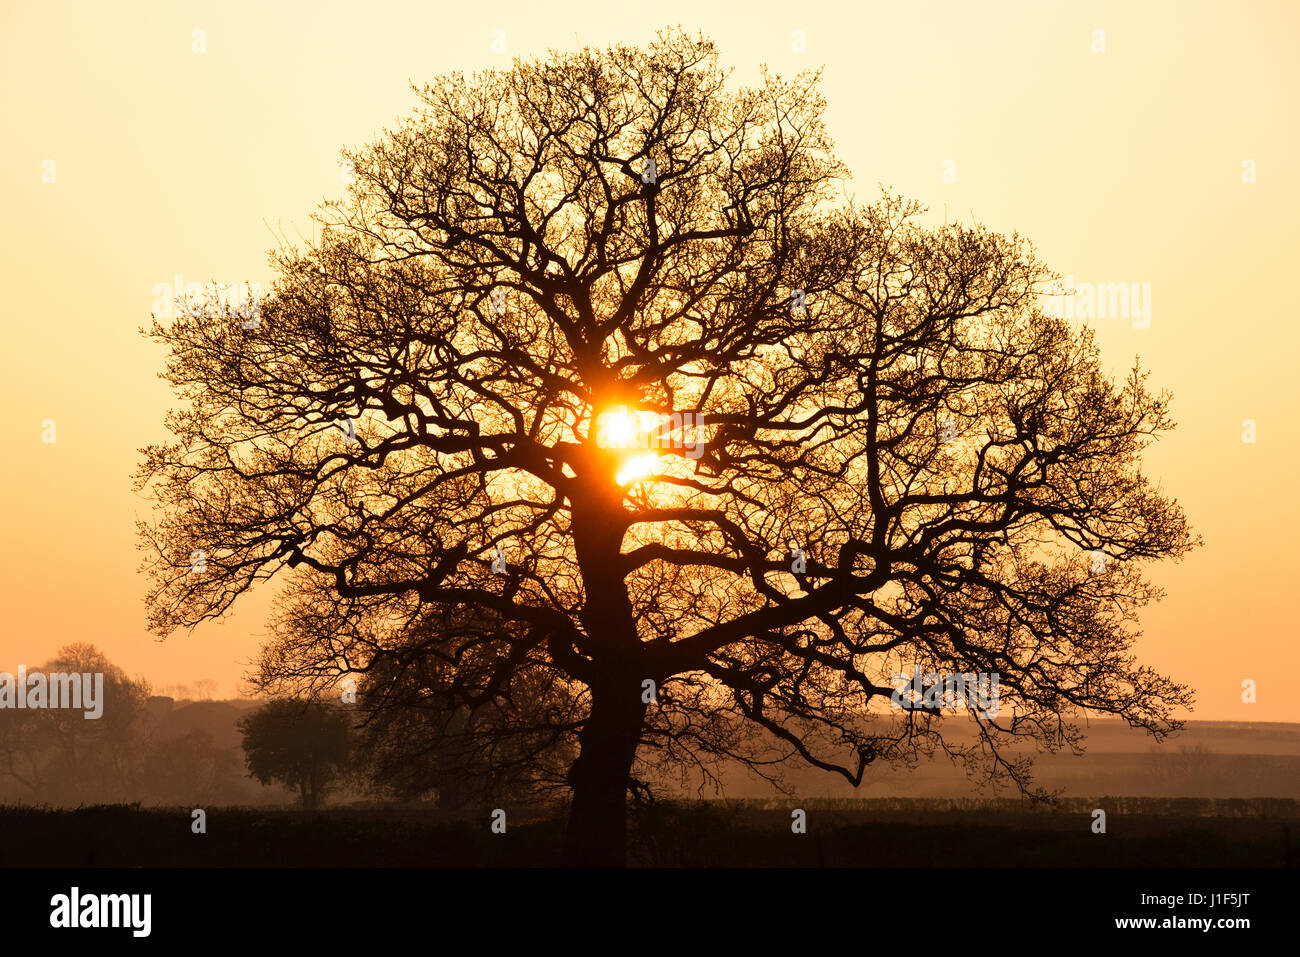 Quercus robur. Oak tree at sunrise in the english countryside. Silhouette. Oxfordshire. UK - Stock Image